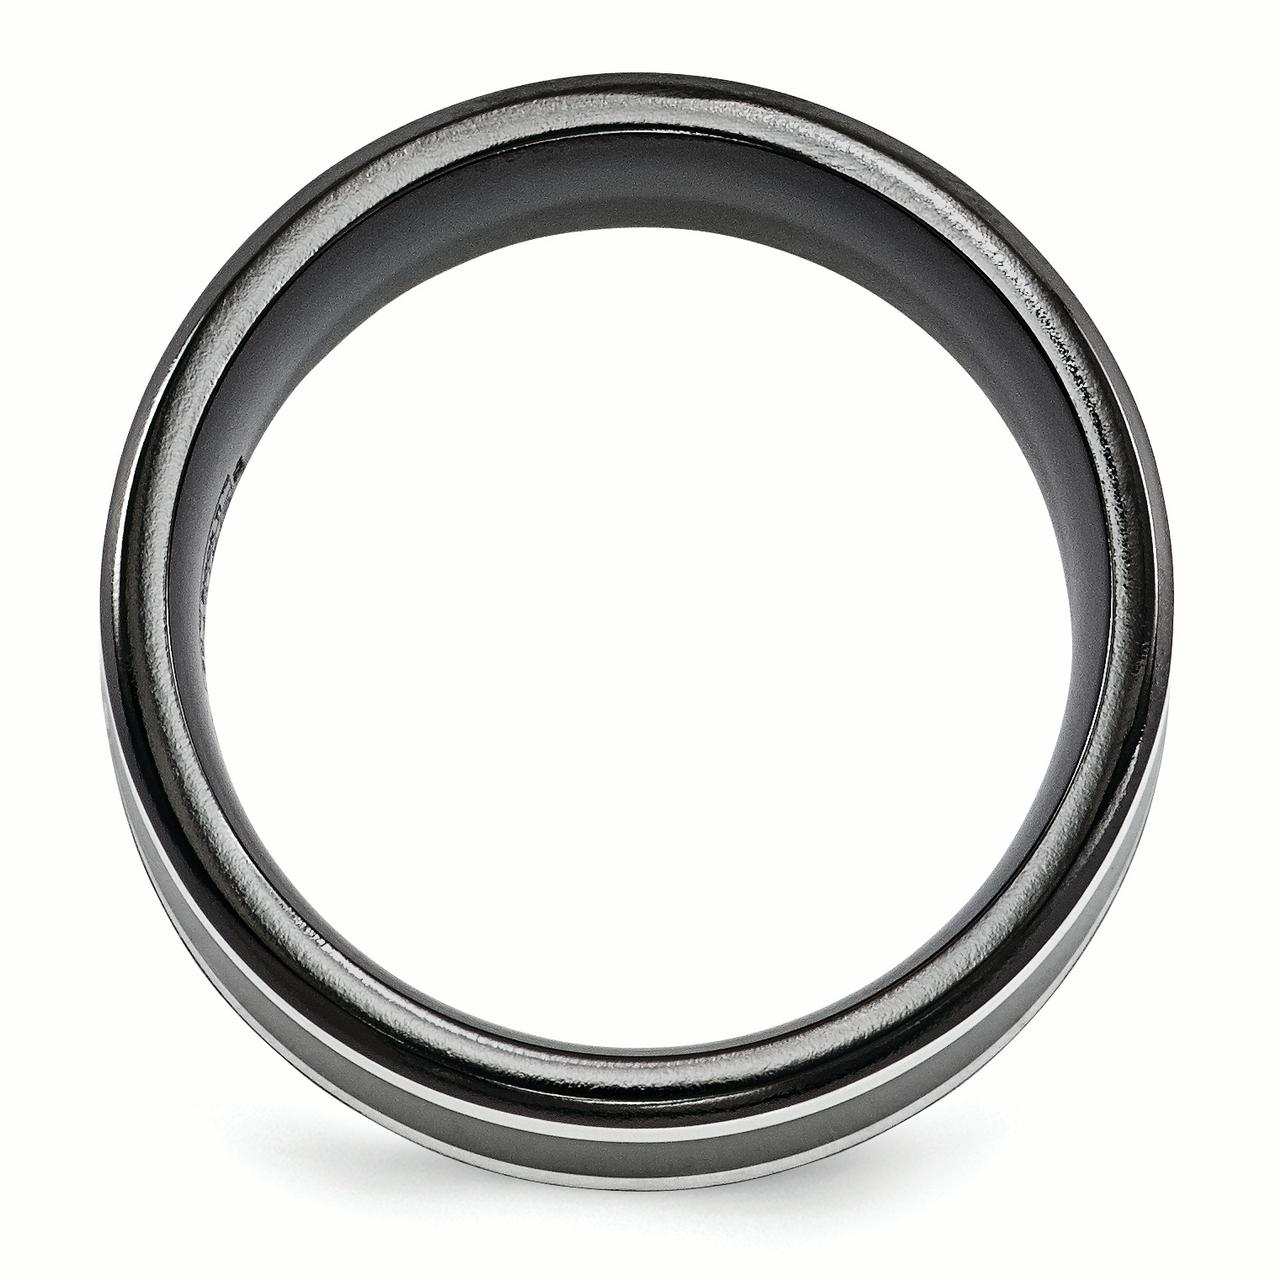 Edward Mirell Black Titanium 14k White Gold 9mm Wedding Ring Band Size 13.00 Man Classic Flat Precious Metal Fine Jewelry Gift For Dad Mens For Him - image 4 de 6